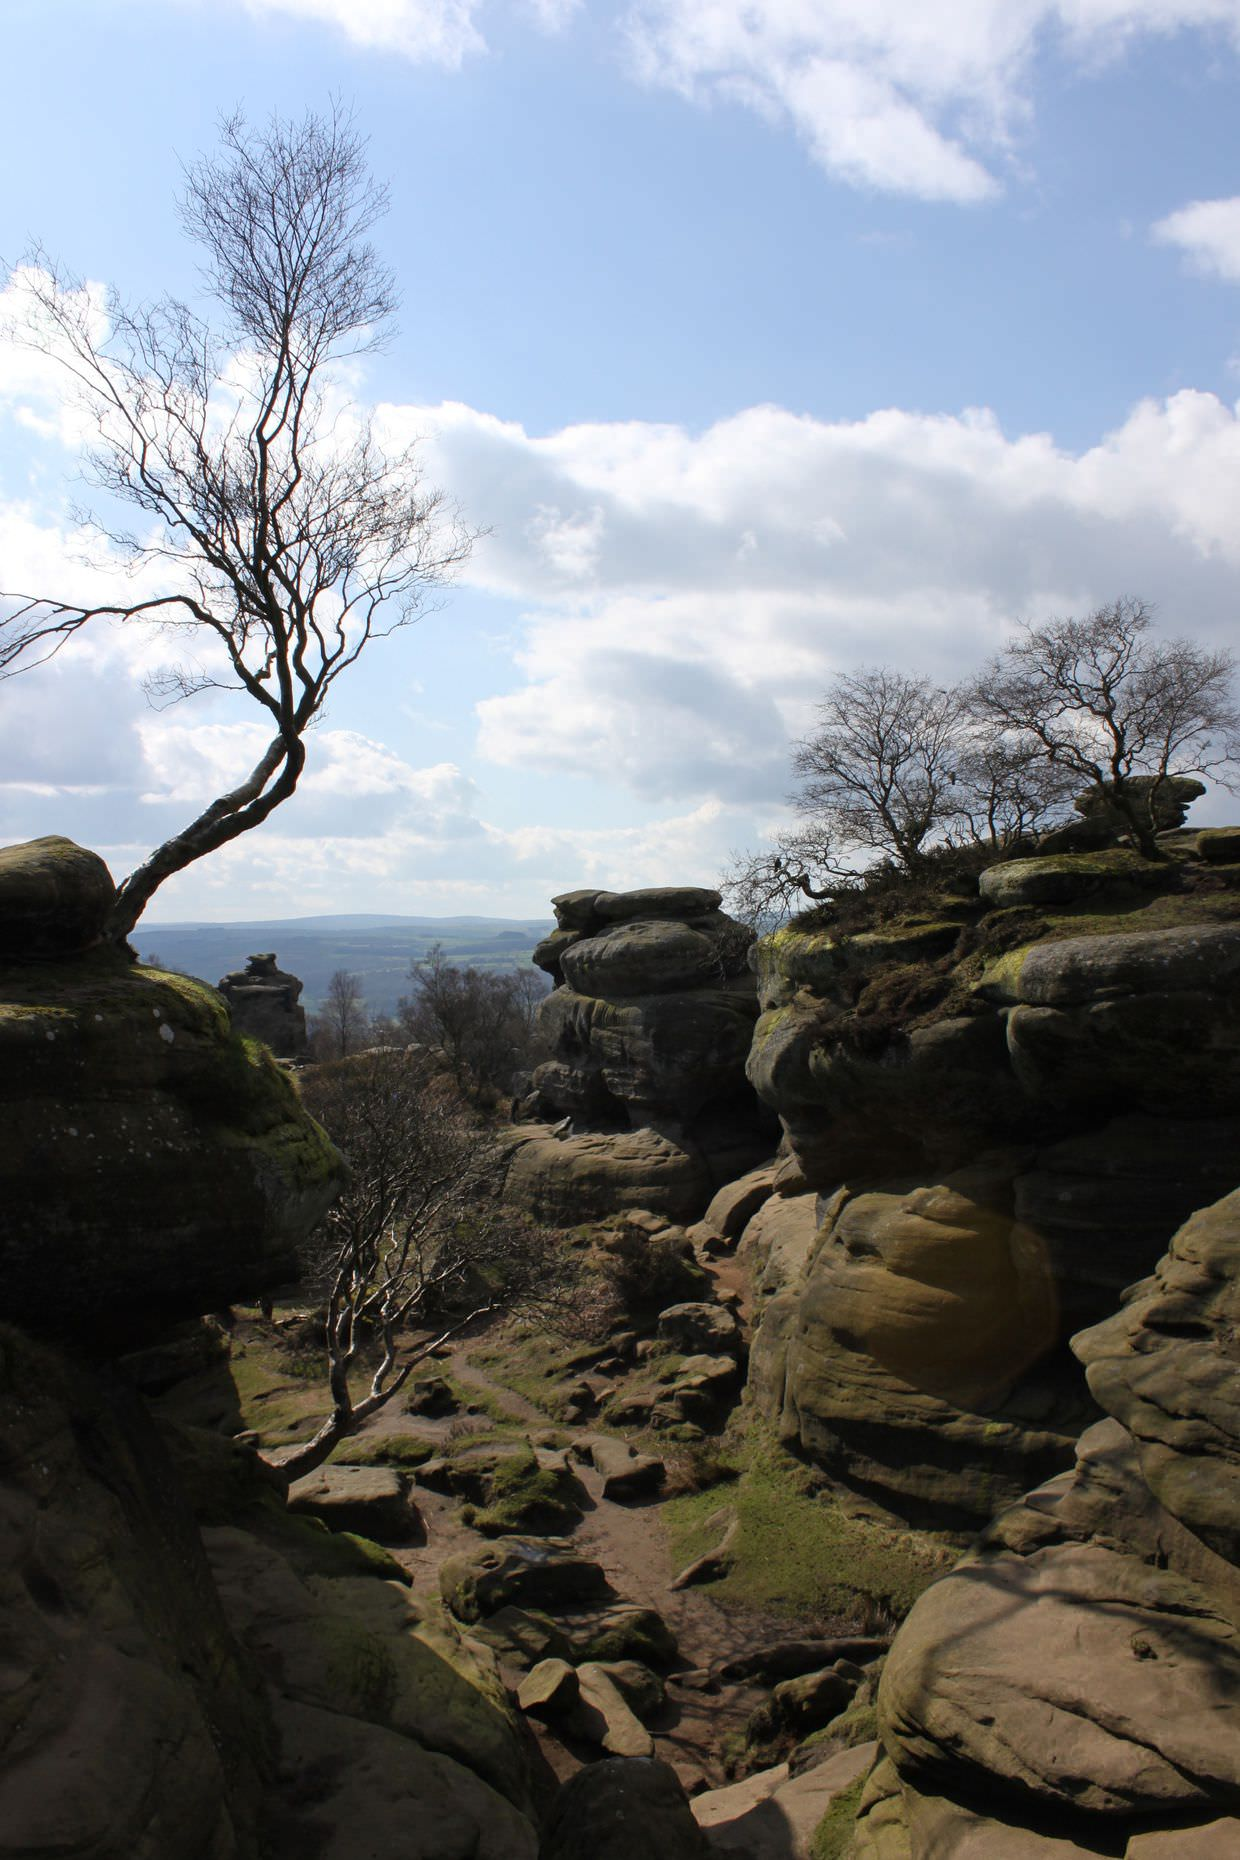 A view of Brimham Rocks, almost like a Halo map